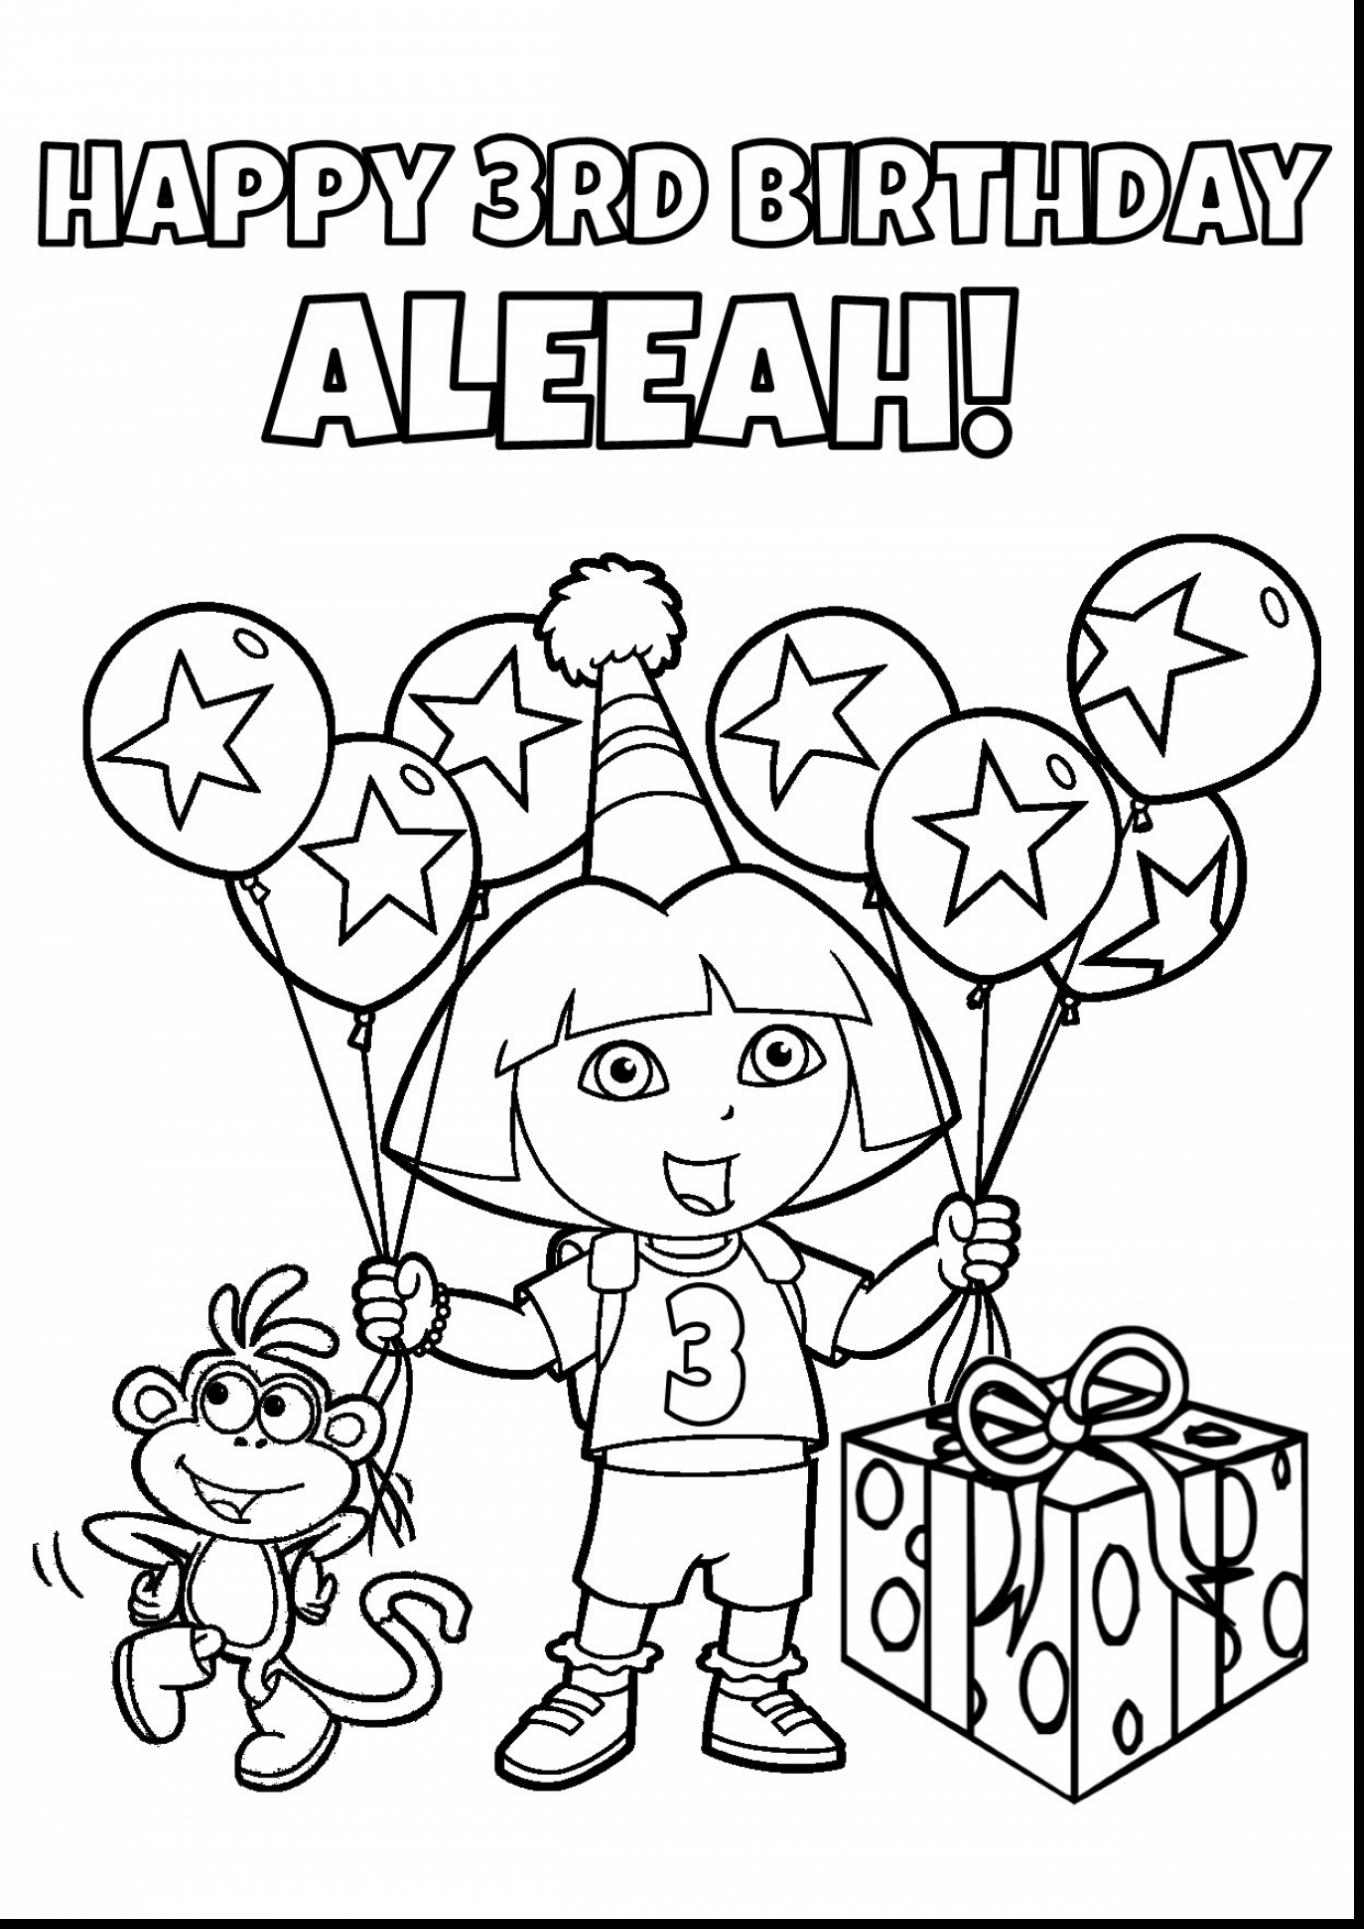 dora birthday coloring pages ; nick-jr-printing-coloring-pages-best-of-spectacular-dora-birthday-printable-with-go-collection